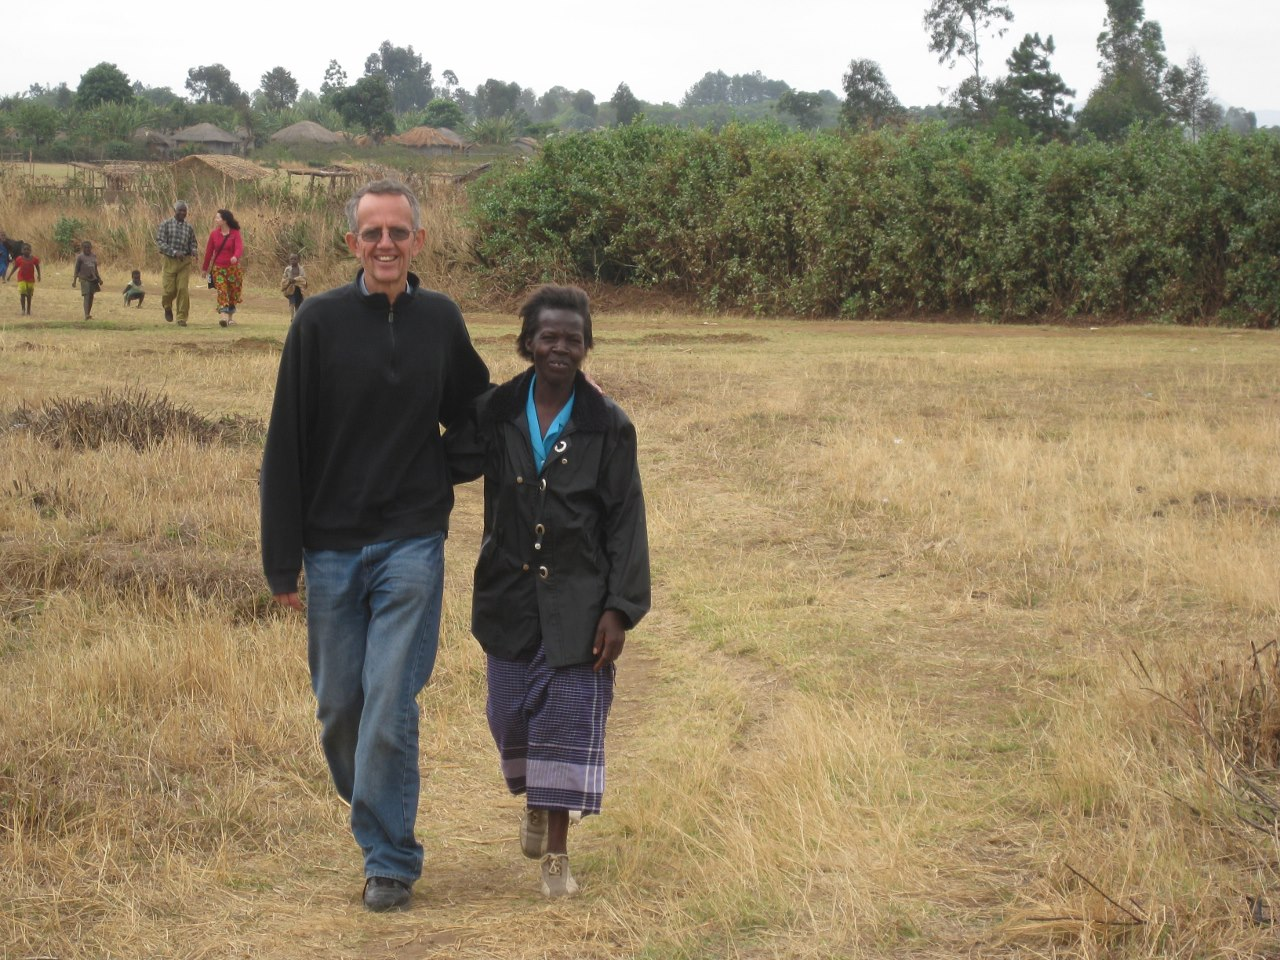 More recently in Malawi, withViolet, a key local leader